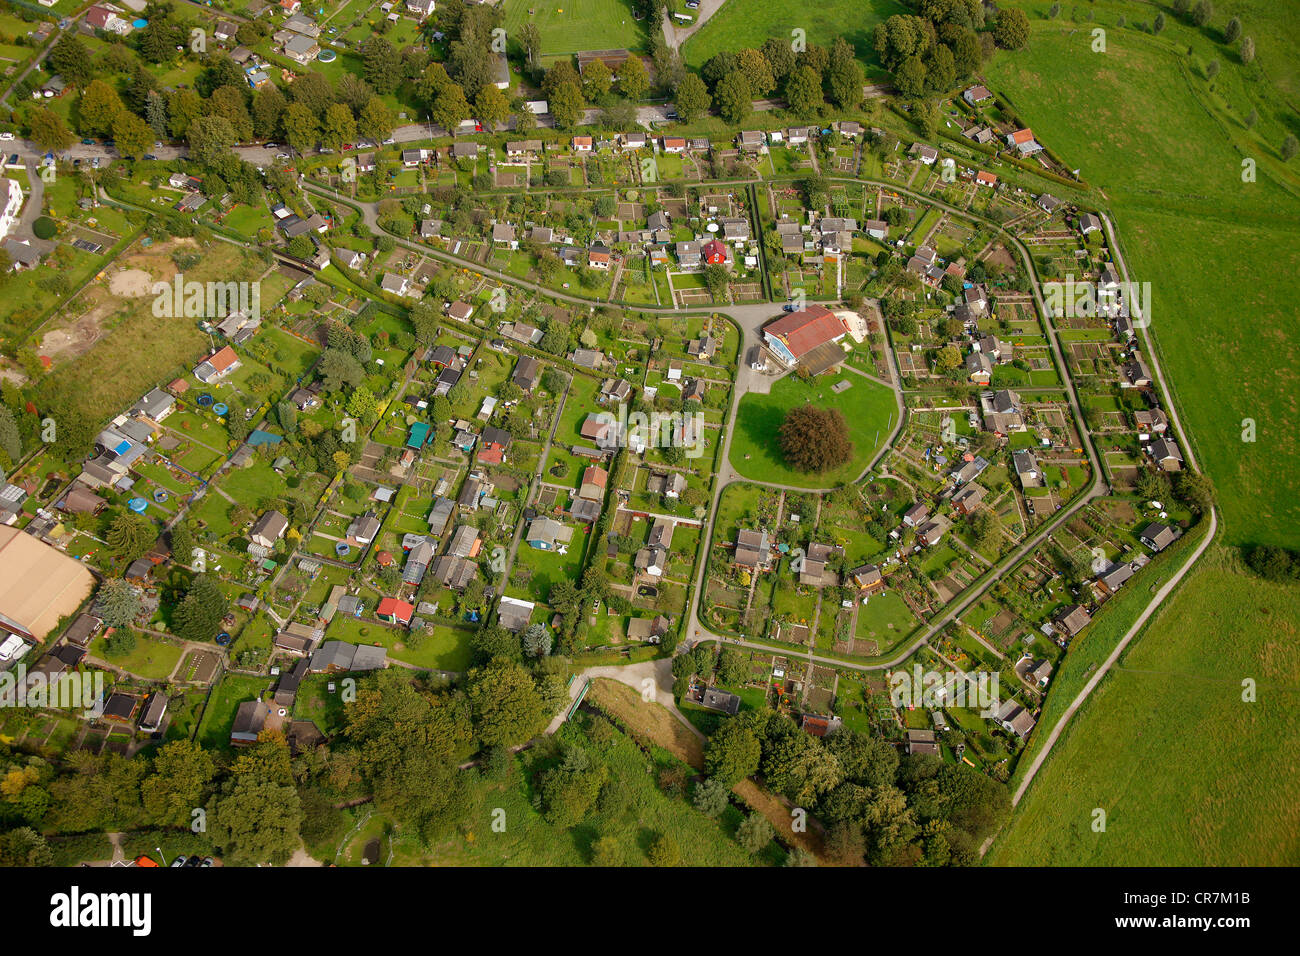 Aerial View Small Allotment Garden Colony Im Reiche Des Wassers